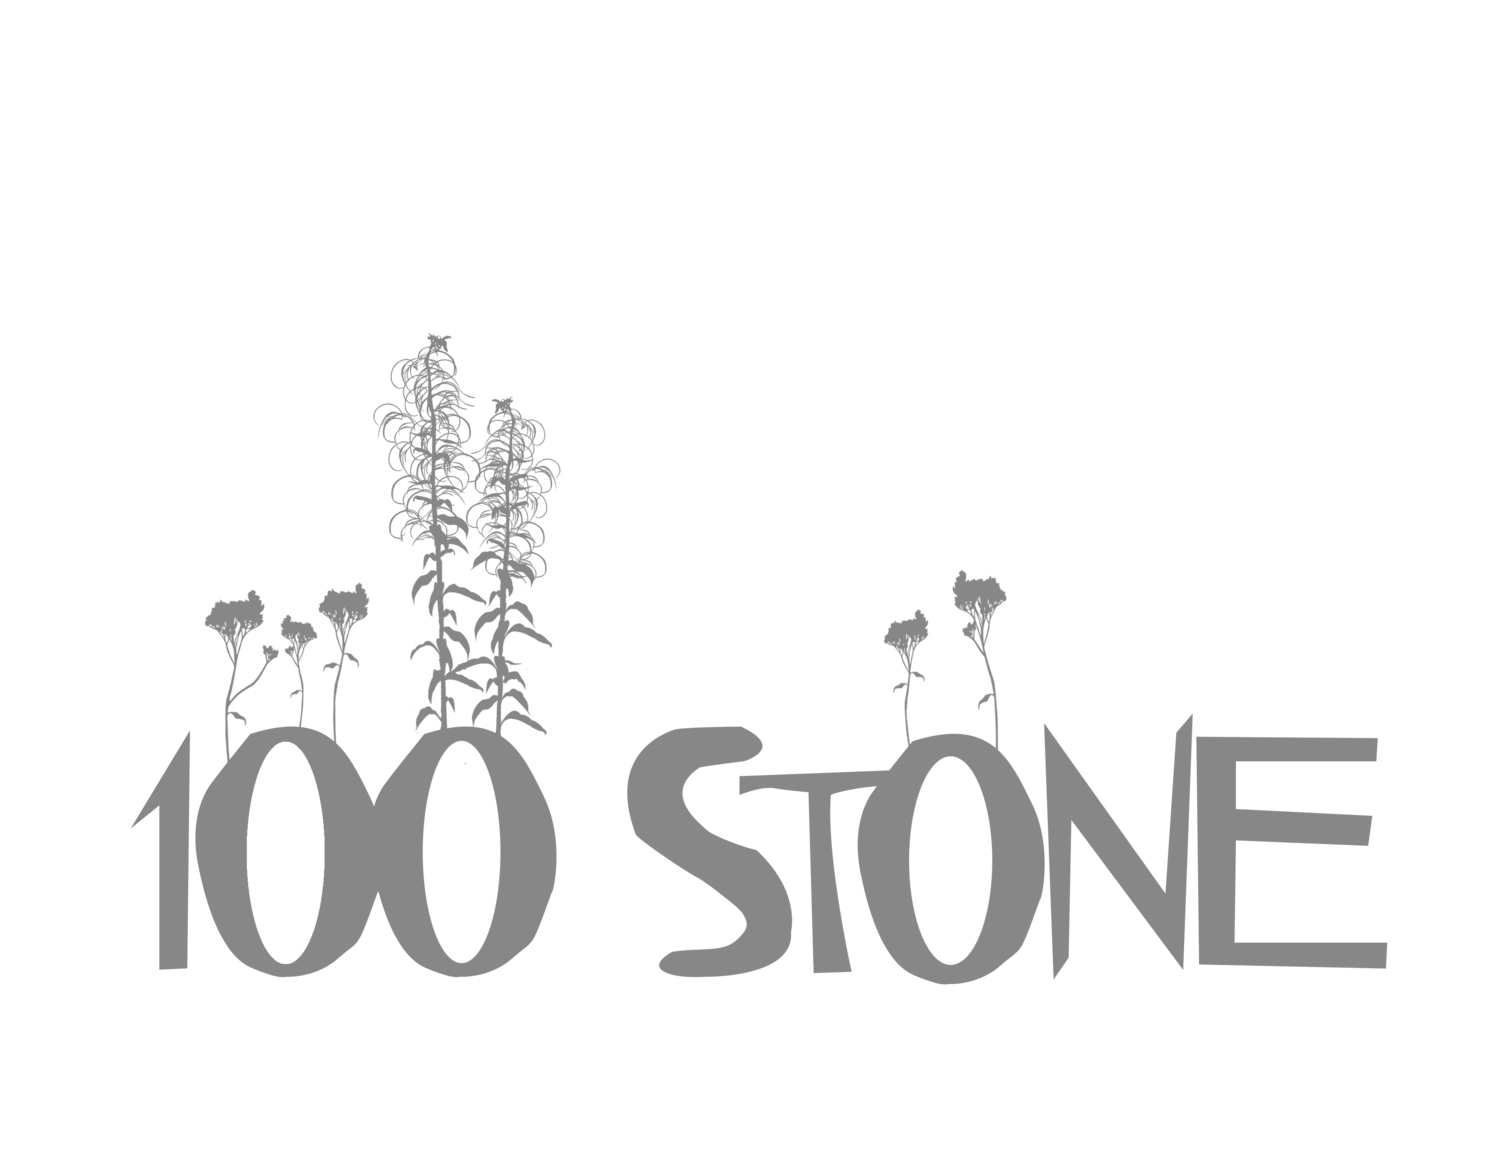 100Stone.png